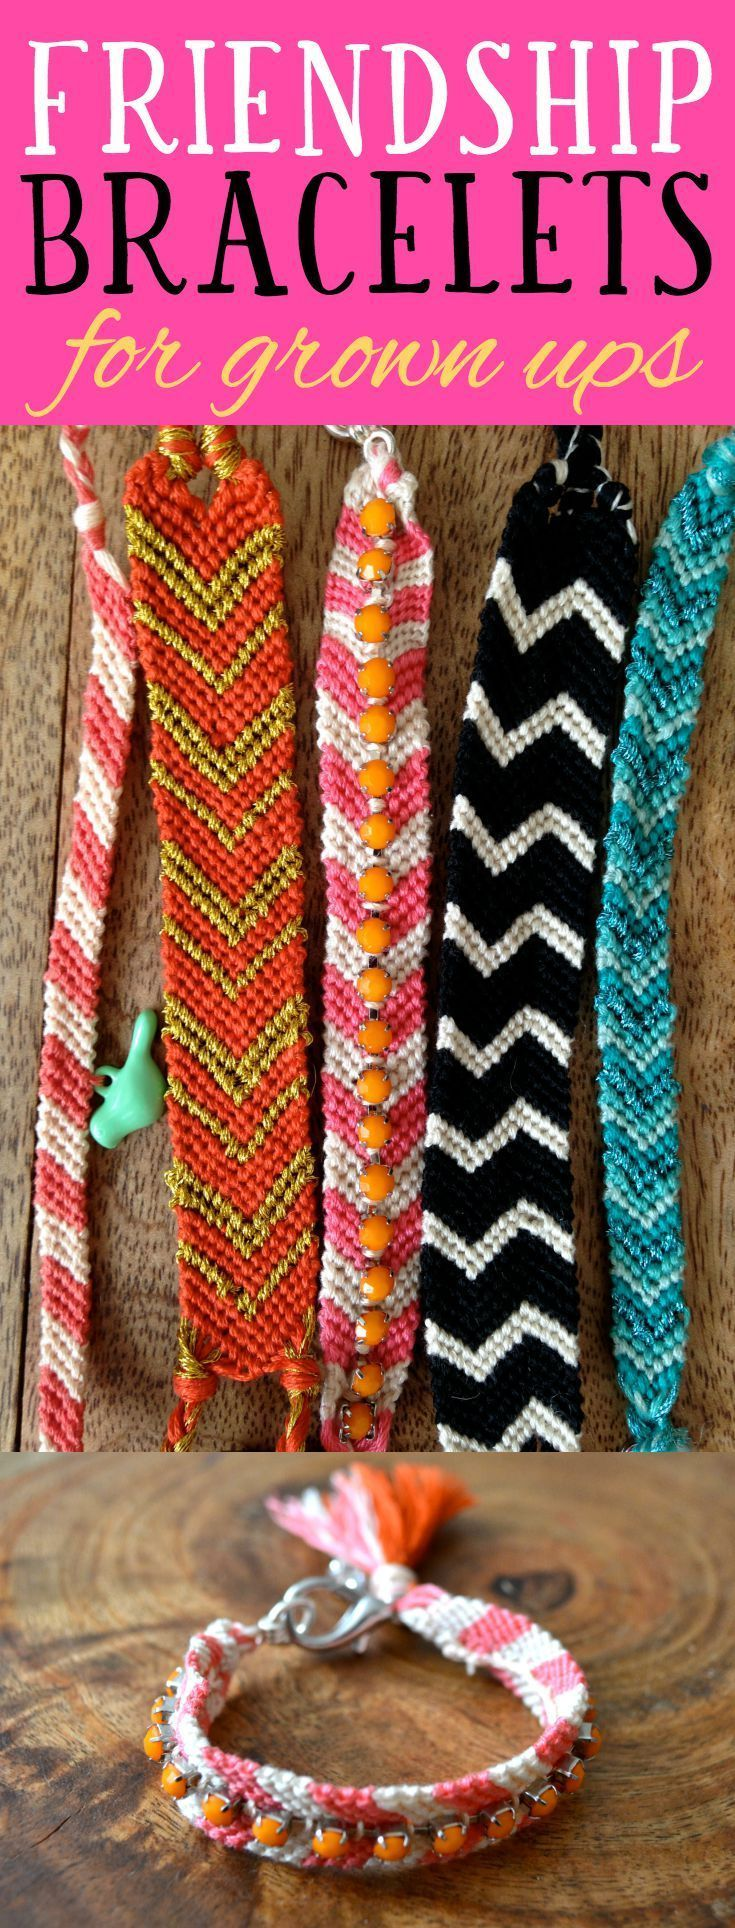 "Friendship bracelets are back in style, and they're not just for kids. Have some creative fun making ""adult"" friendship bracelets with different patterns, embellishments and clasps."